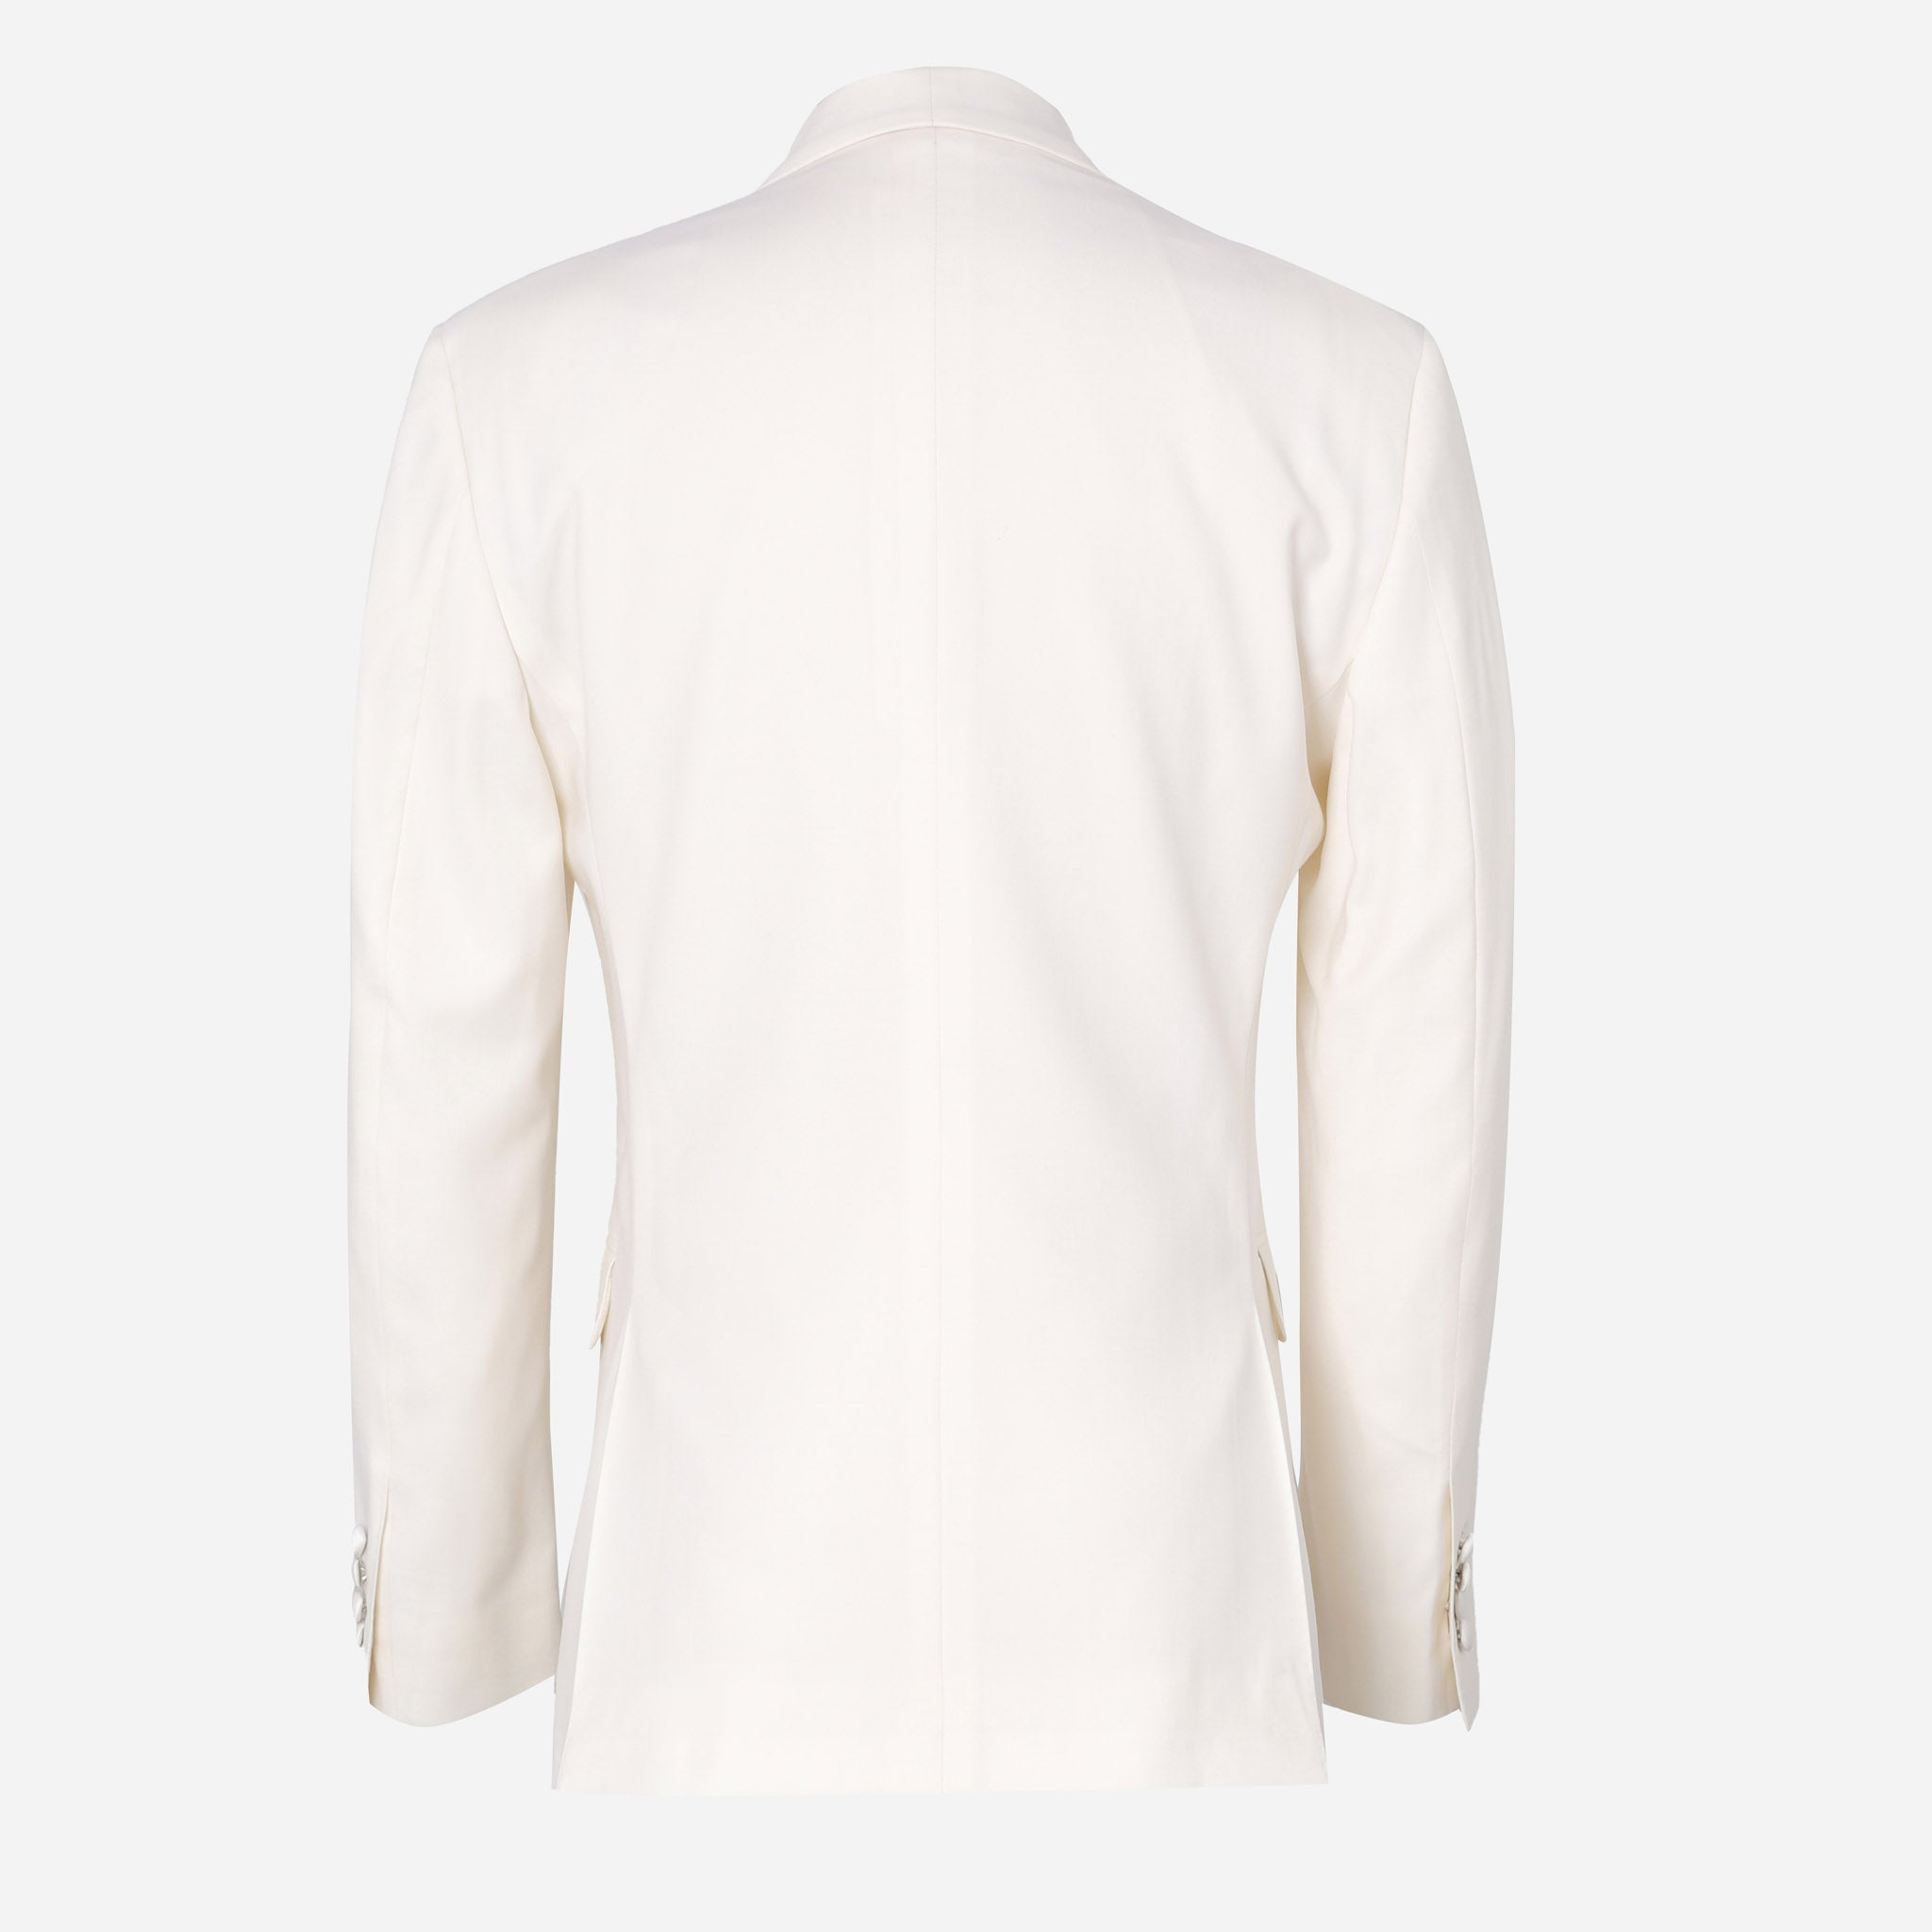 Emmanuel Luxe Dinner Jacket in White